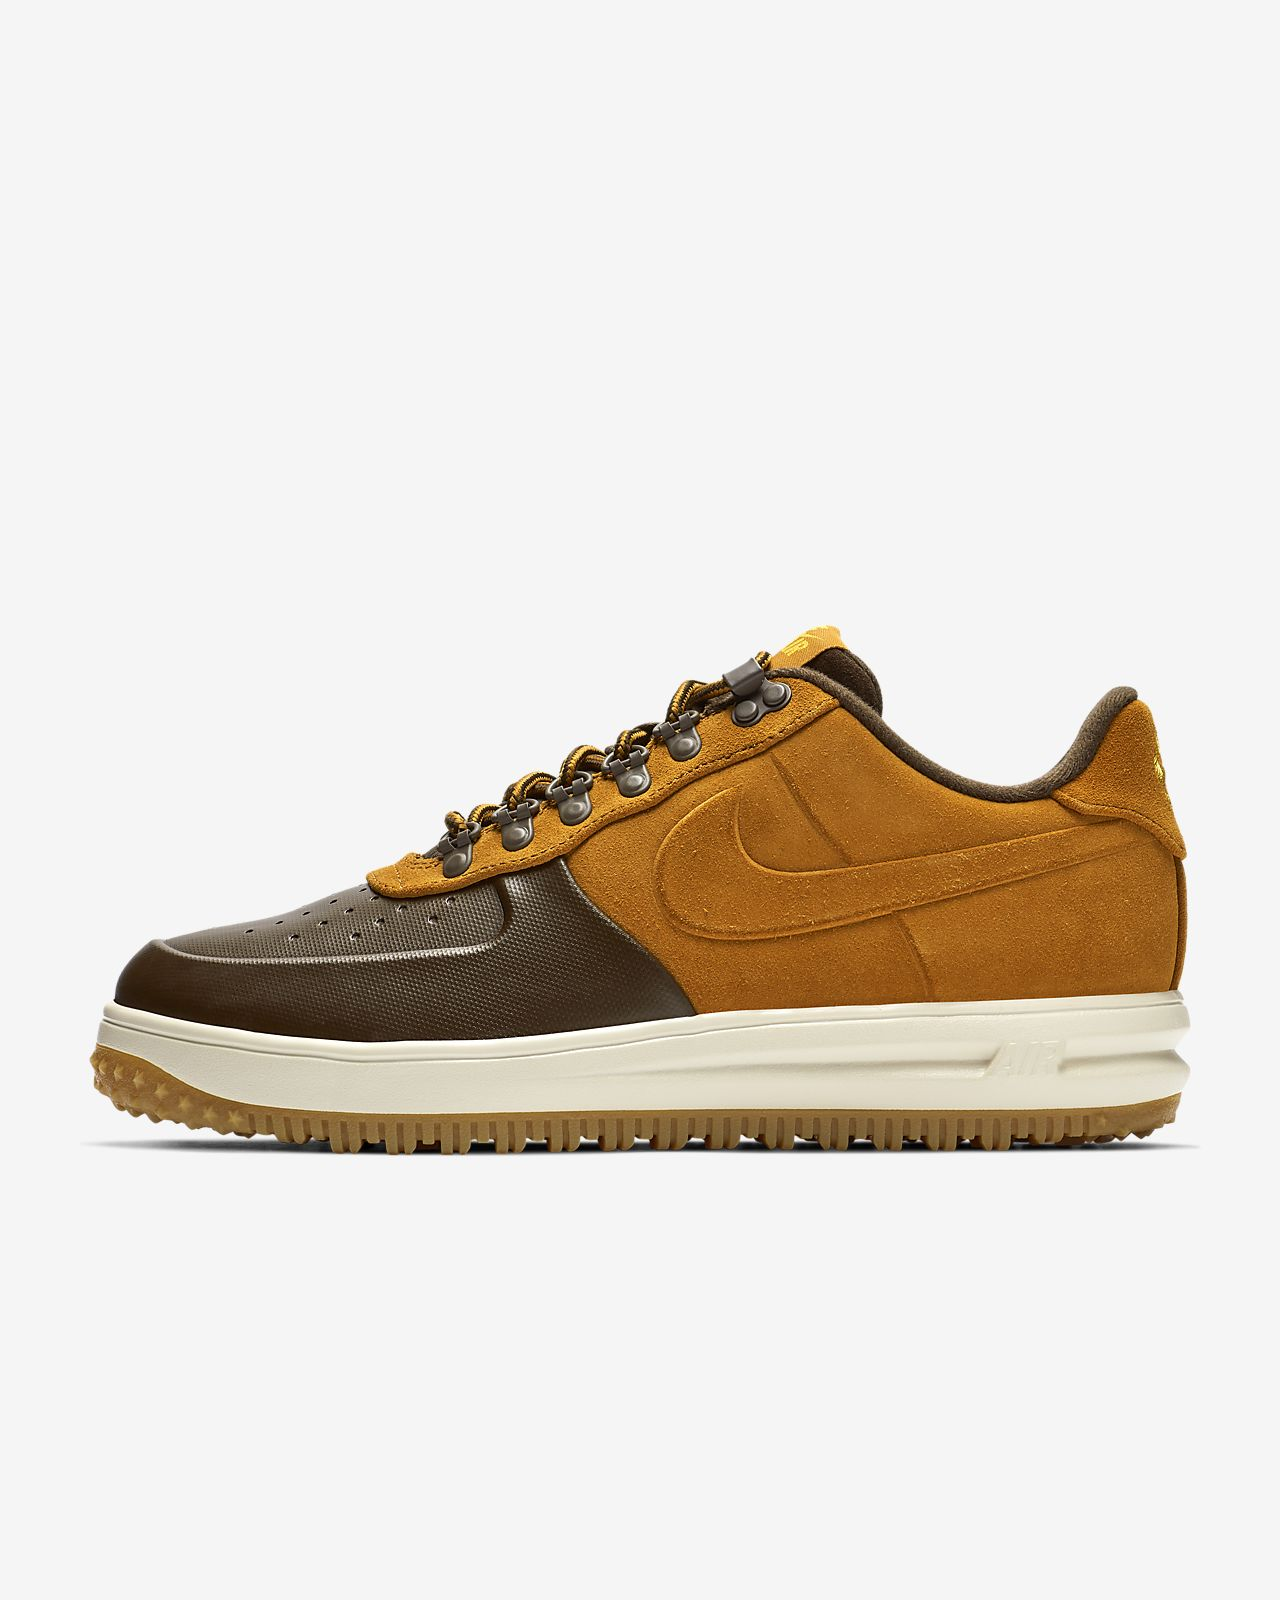 12186abedff0 Nike Lunar Force 1 Duckboot Low Men s Shoe. Nike.com